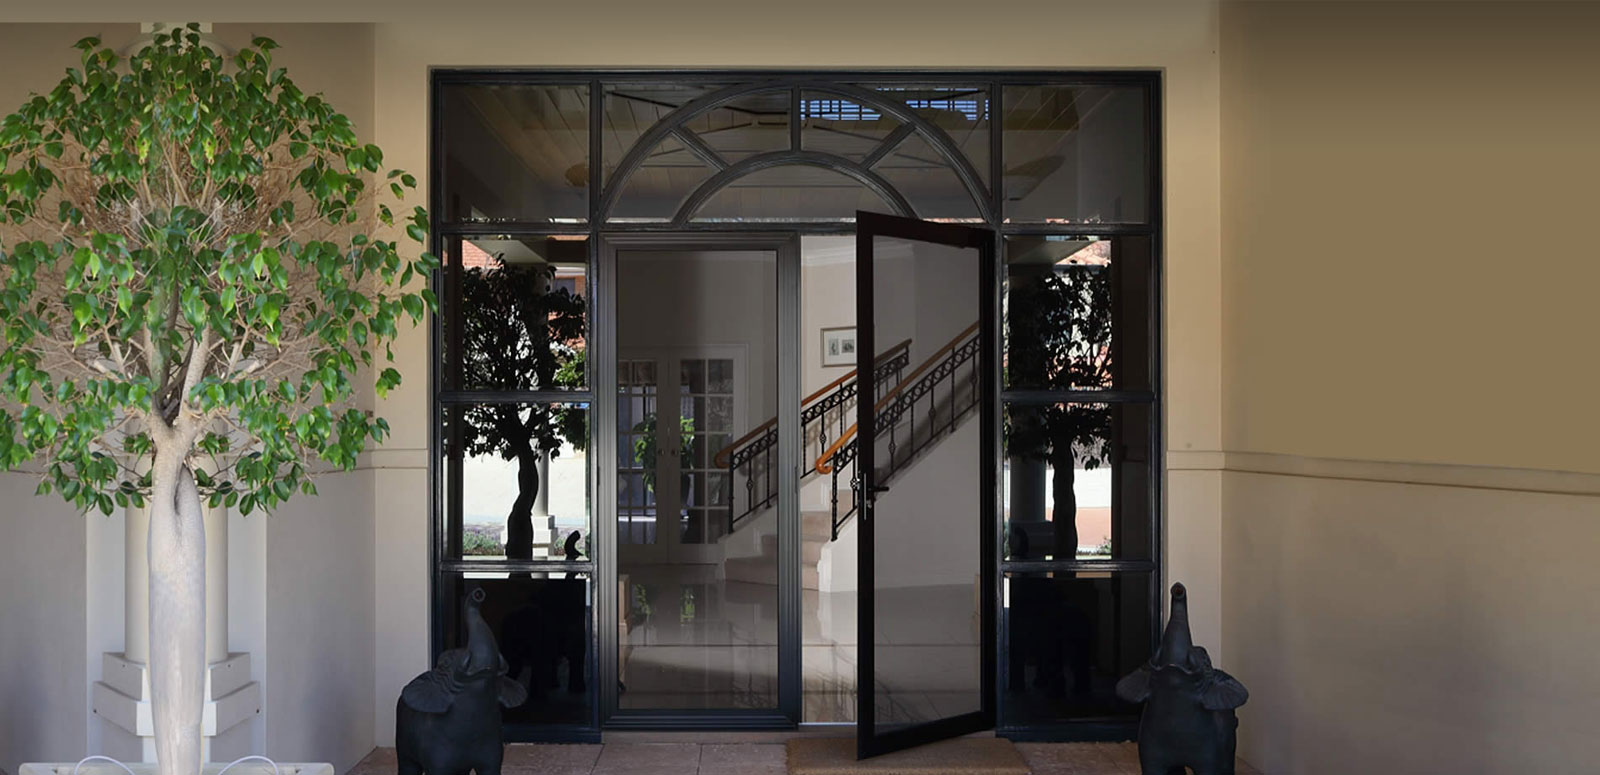 775 #476330 Home Security With Sturdy Steel Doors Can Let You Holiday In Peace  save image Steel Doors For Home 43671600